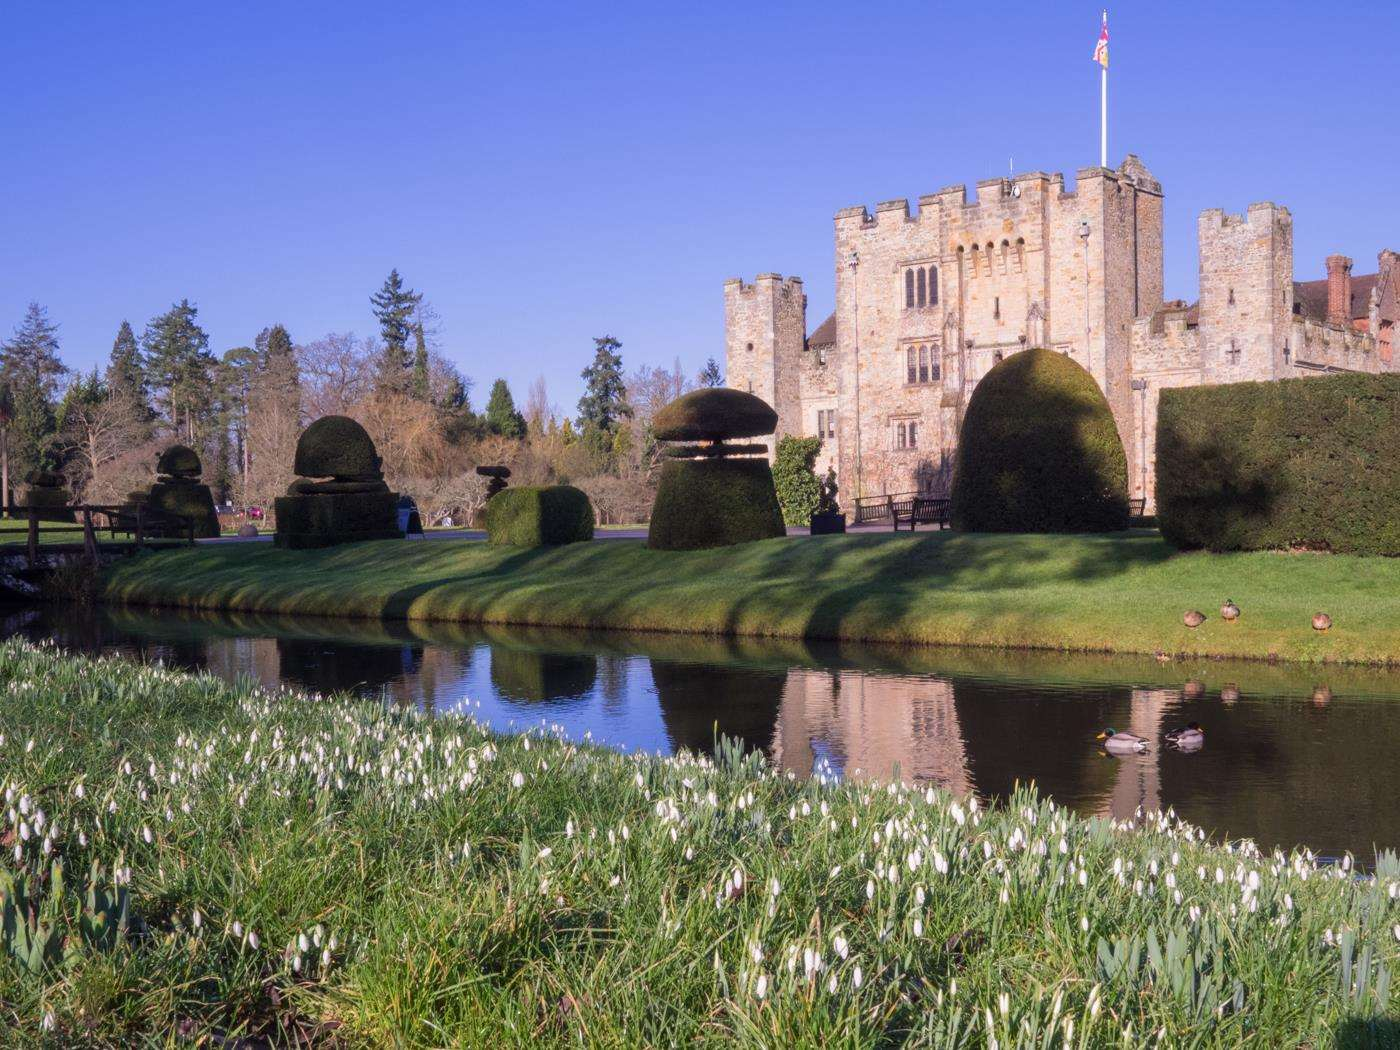 Spring blooms will soon be on display at Hever Castle